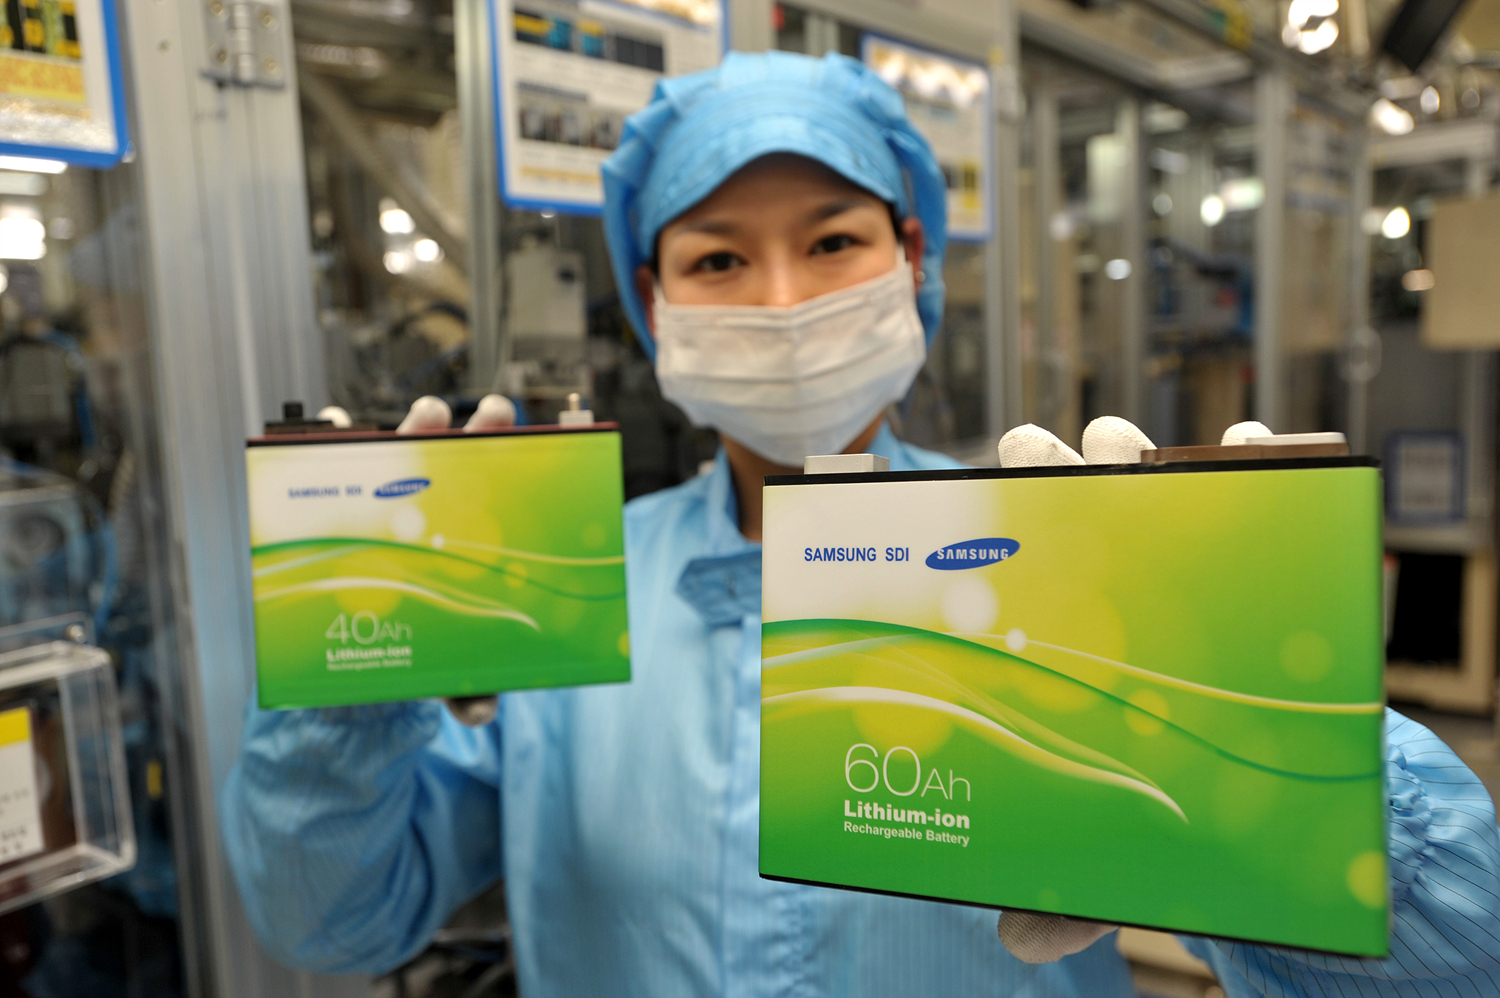 Samsung SDI is going to concentrating on its electric vehicle (EV) battery business, and as part of it, the company will invest 1 trillion won (US$866.18 million) in the EV battery business this year.